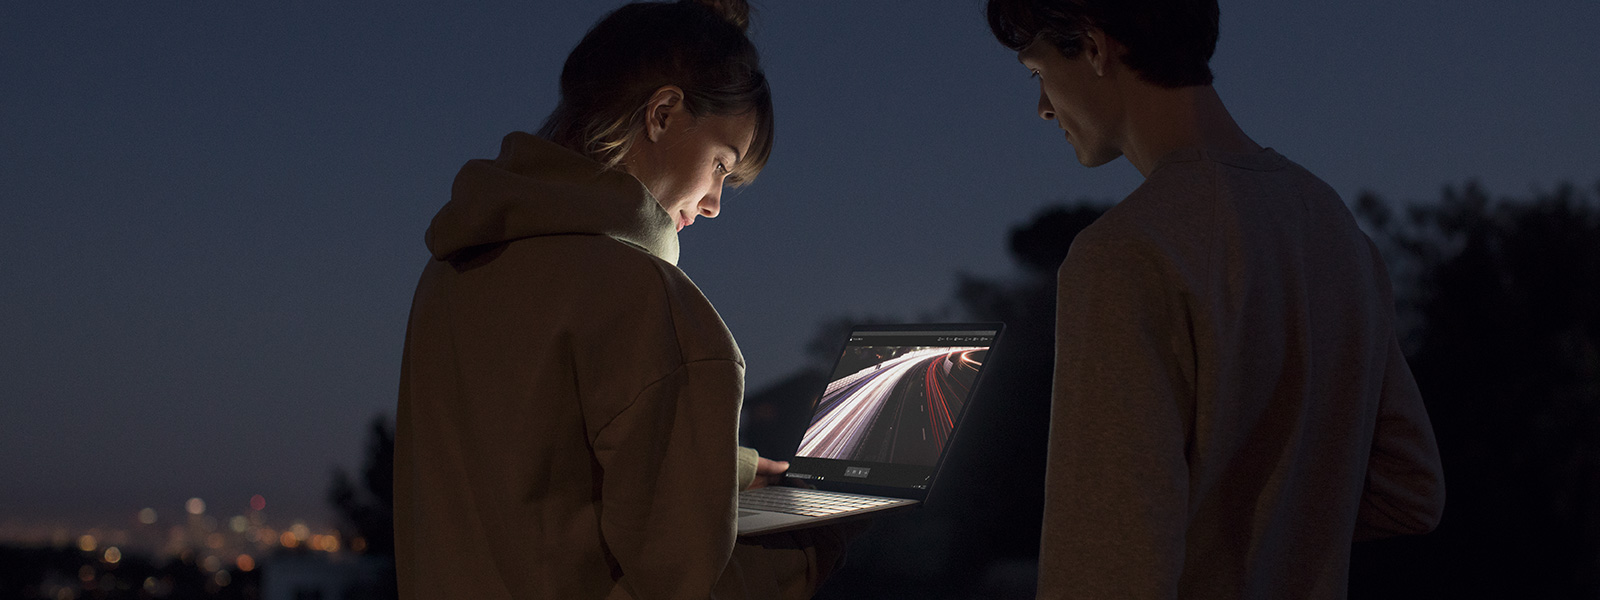 Woman using Surface Pen on a Surface touchscreen.